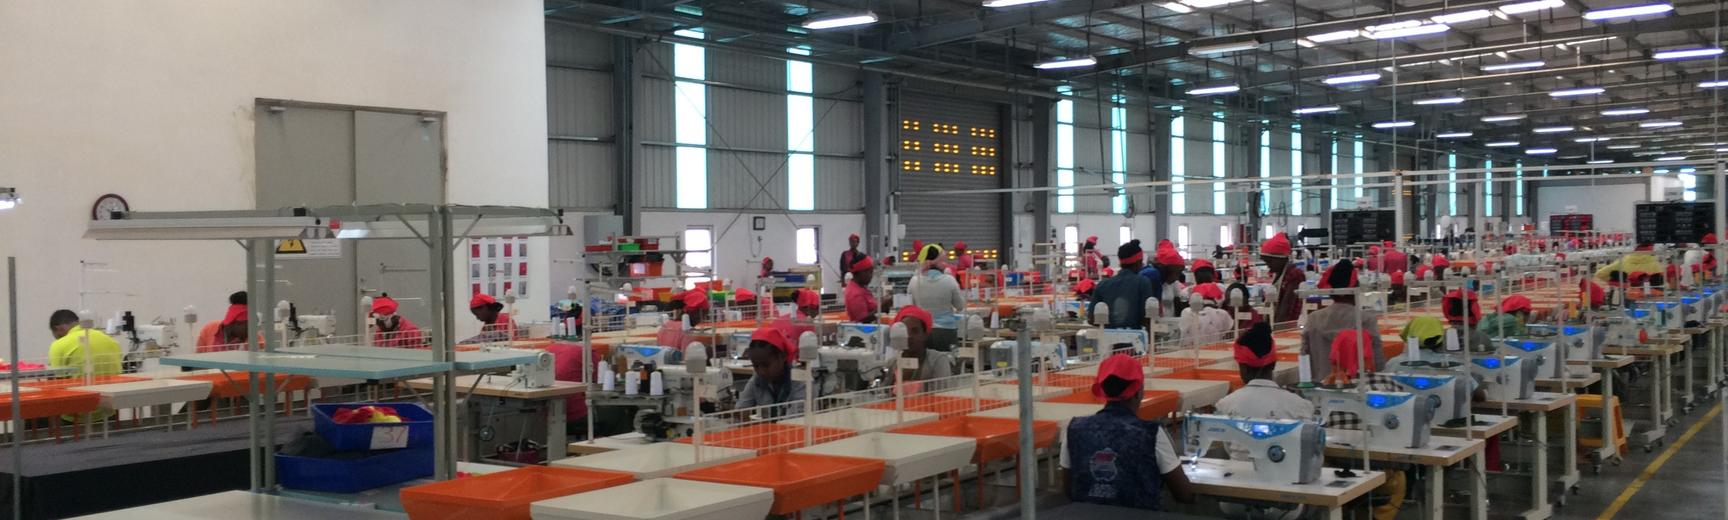 Busy factory floor in addis ababa